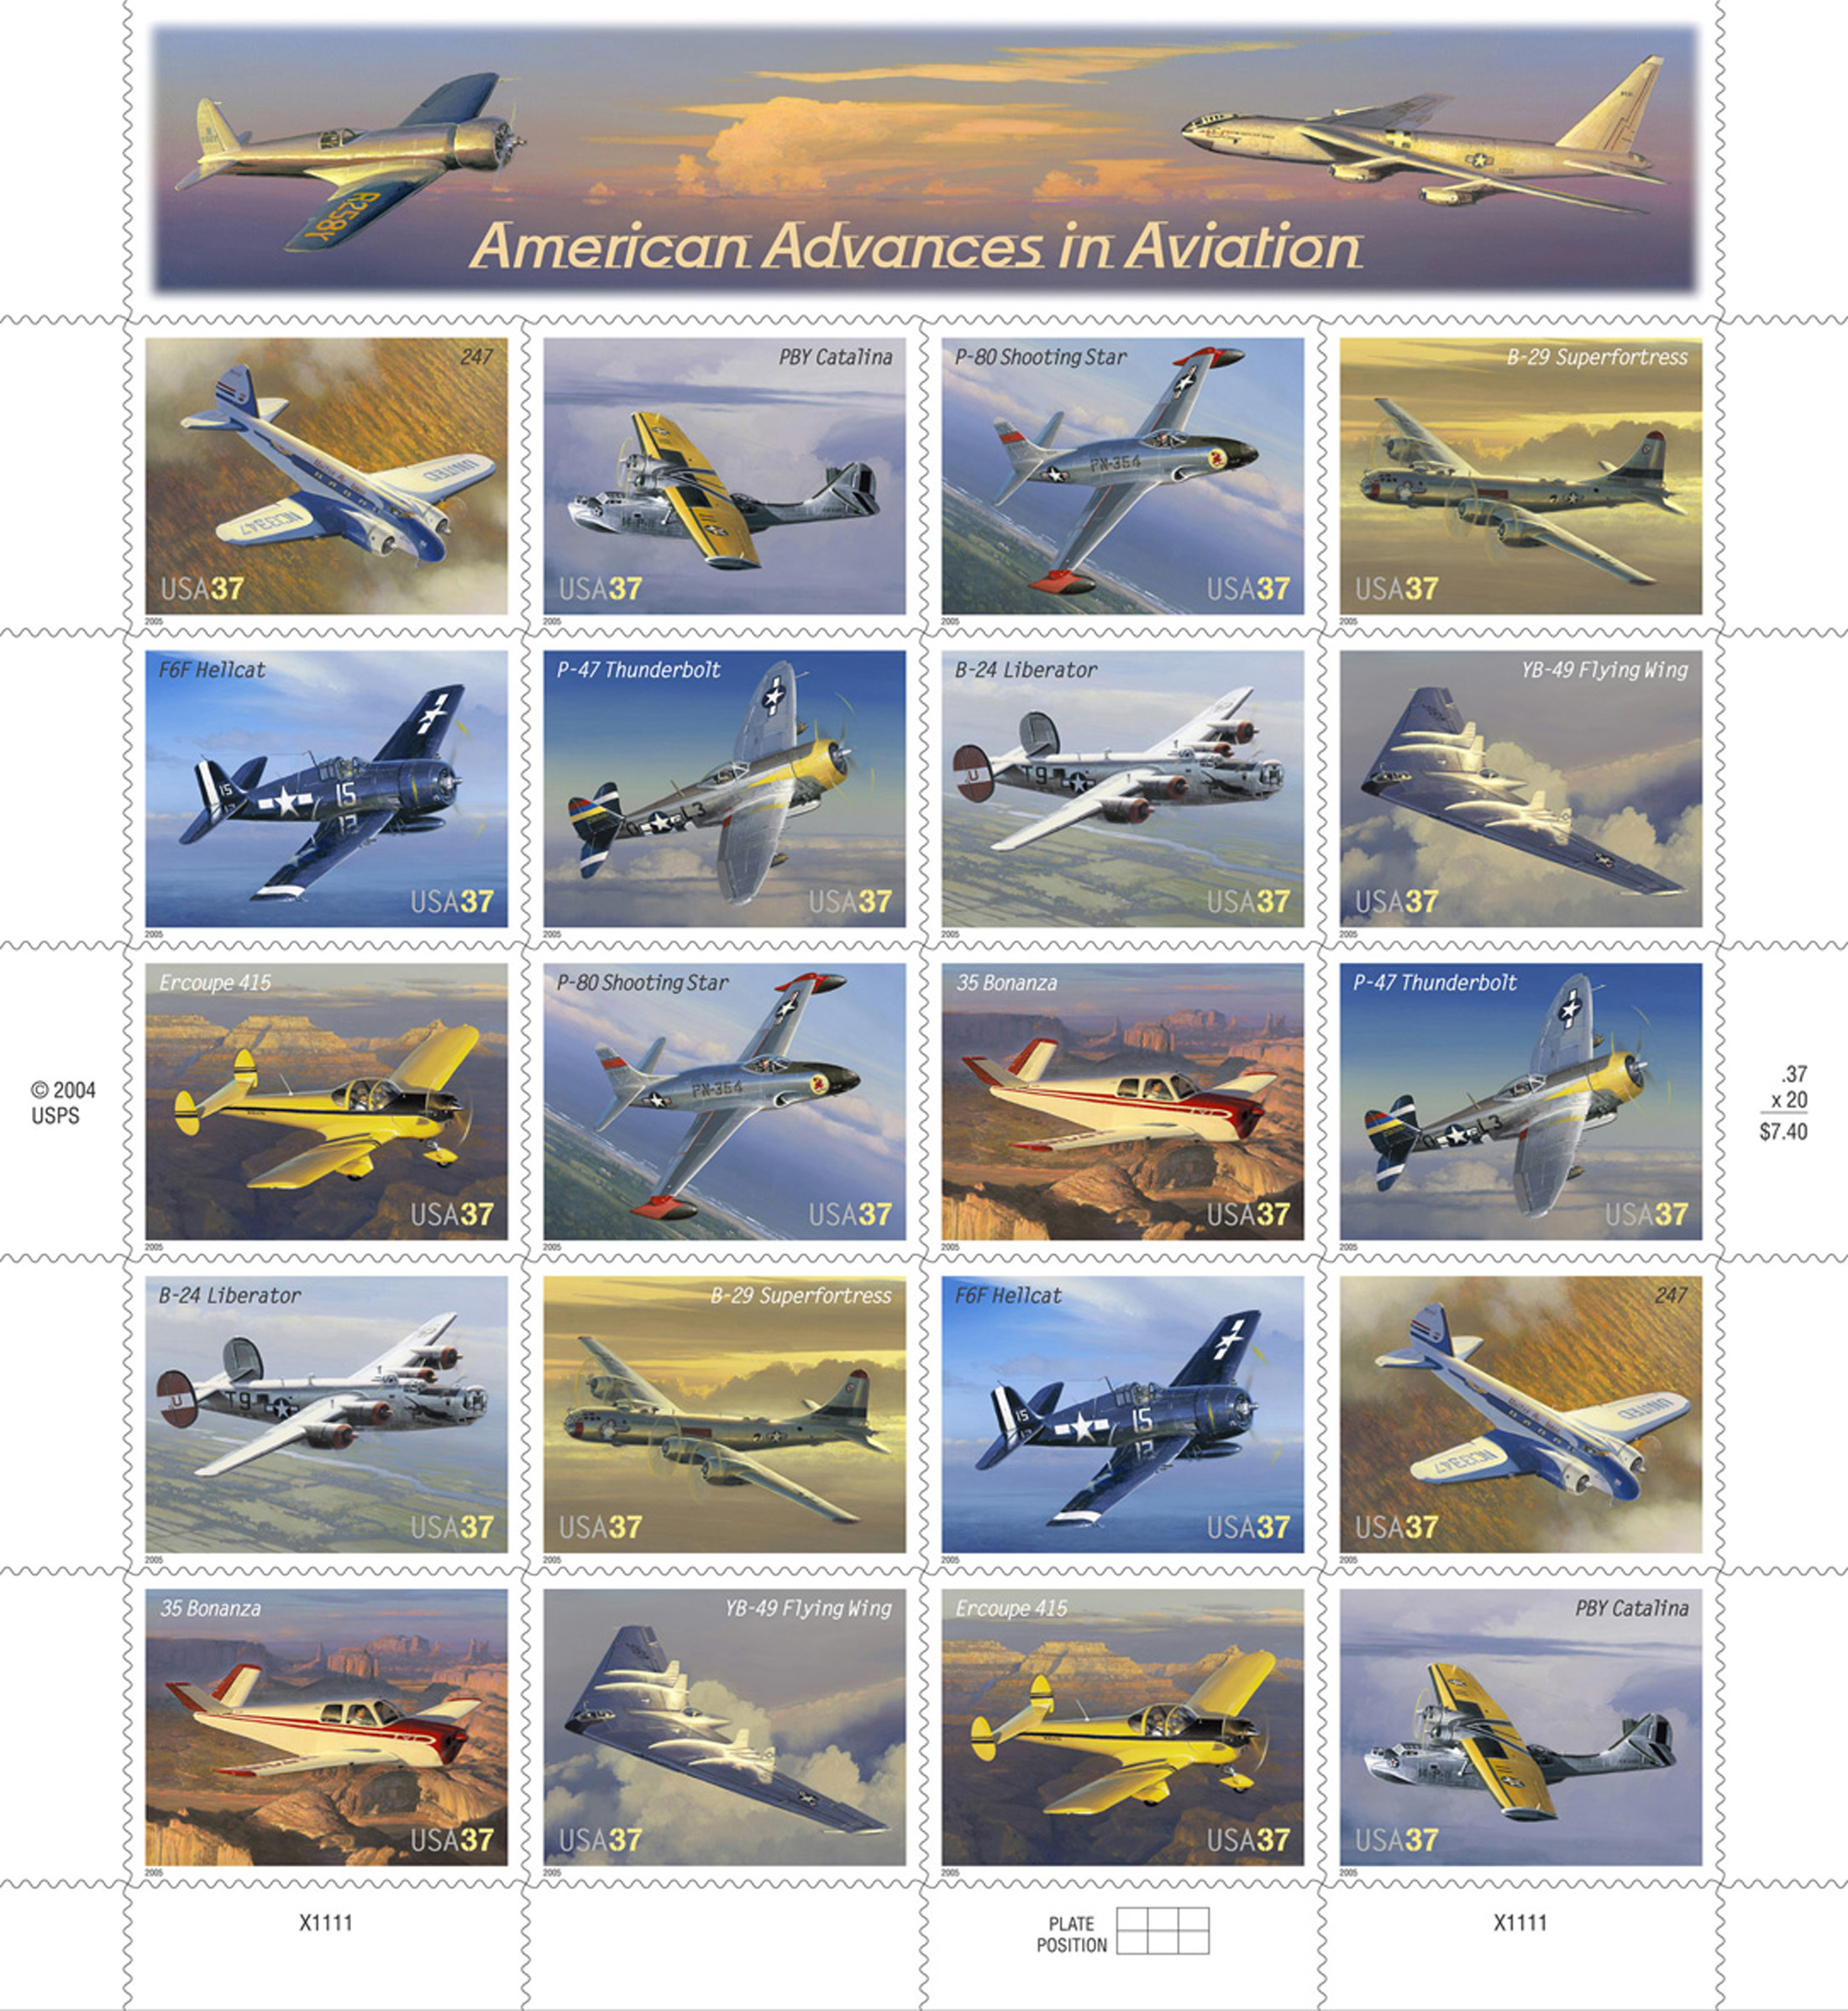 Aviation Stamps Take Flight